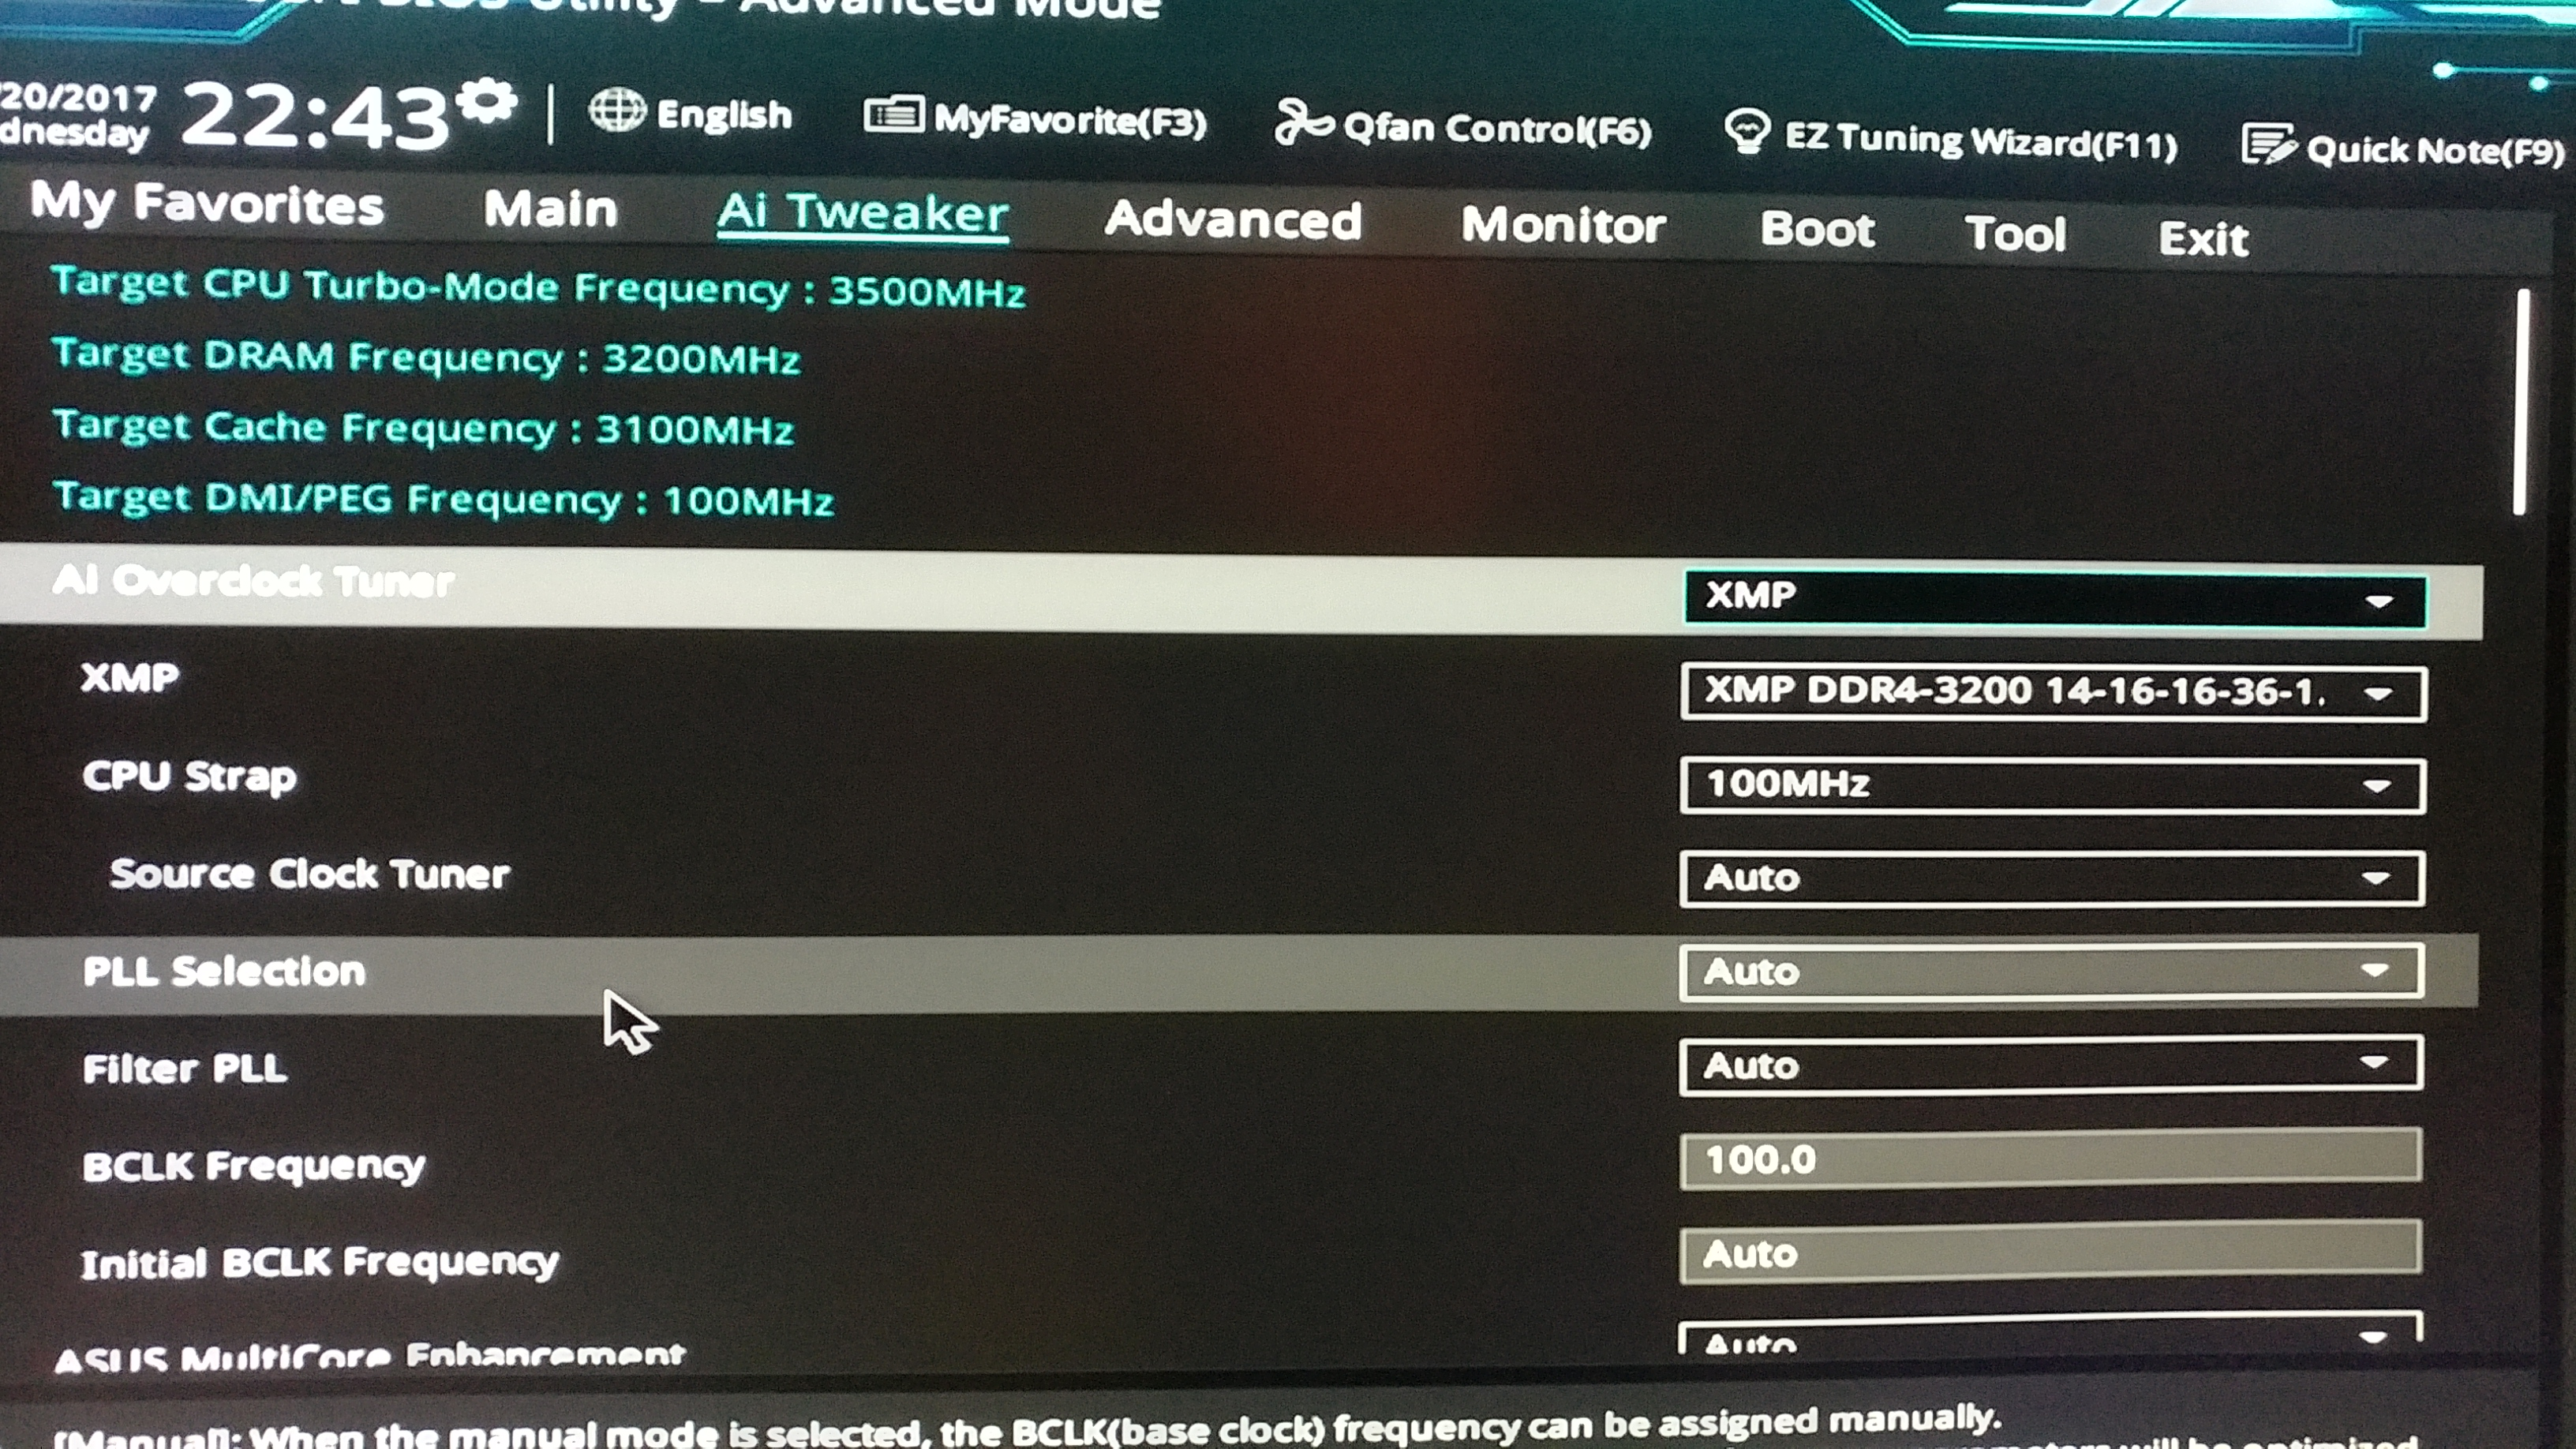 Need Help with Stabilising Overclock  - CPUs, Motherboards, and